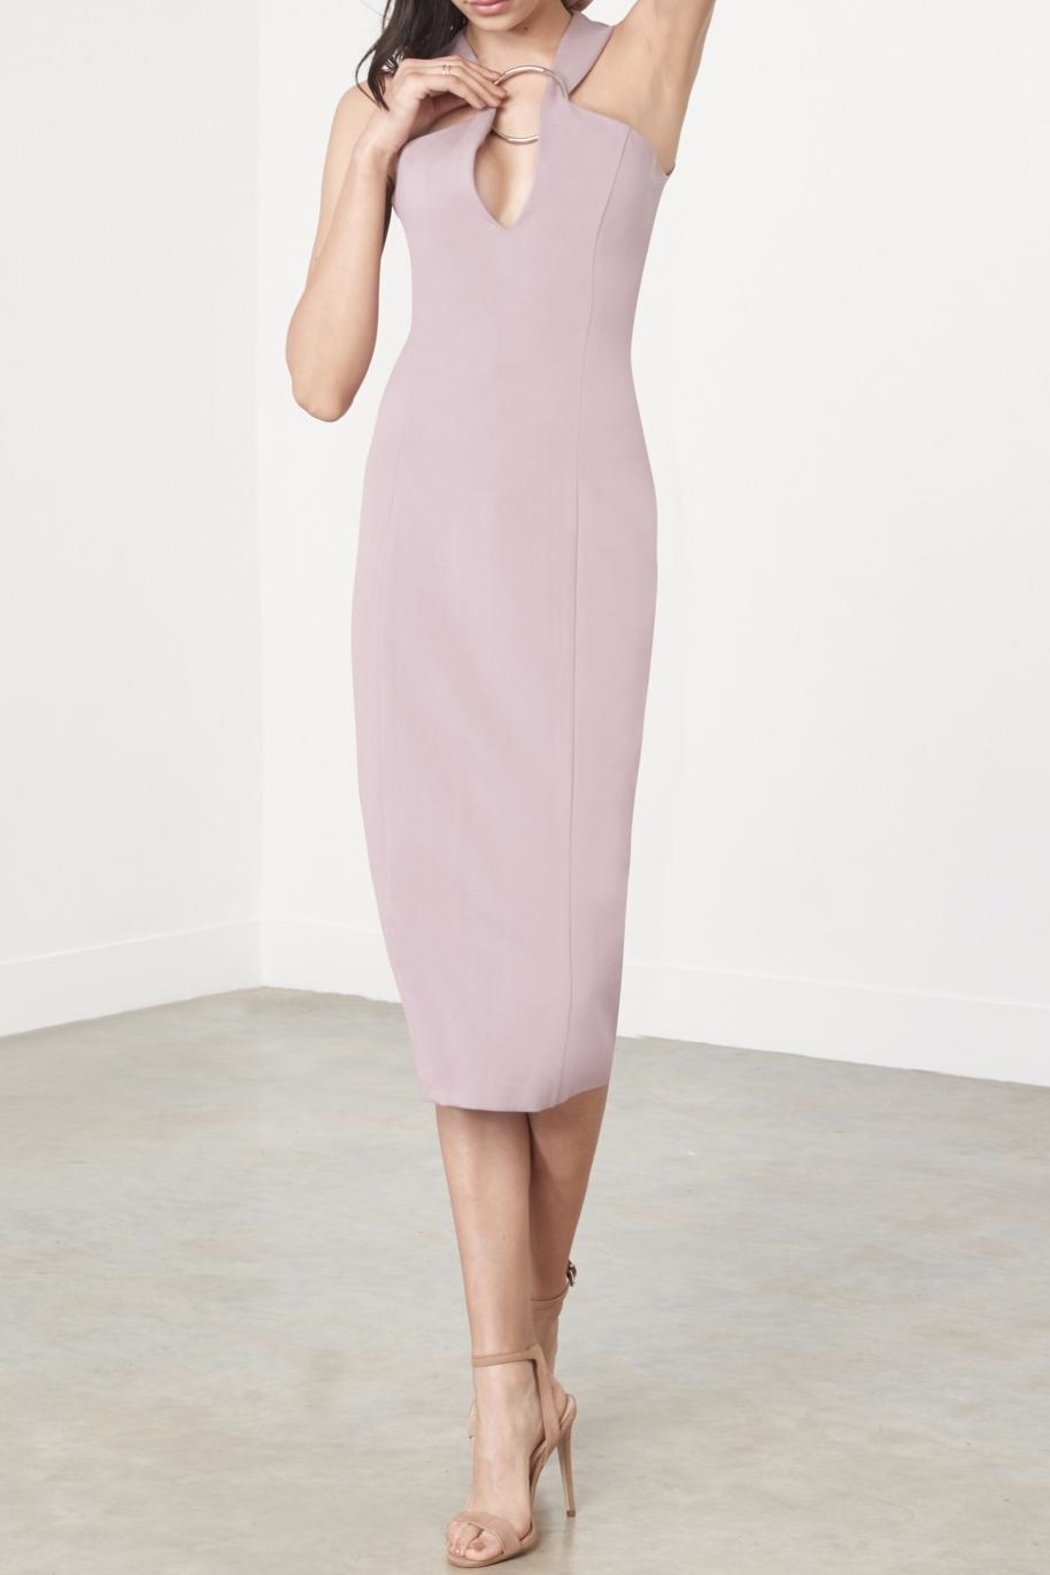 LAVISH ALICE Mauve Metal Ring Dress - Front Full Image